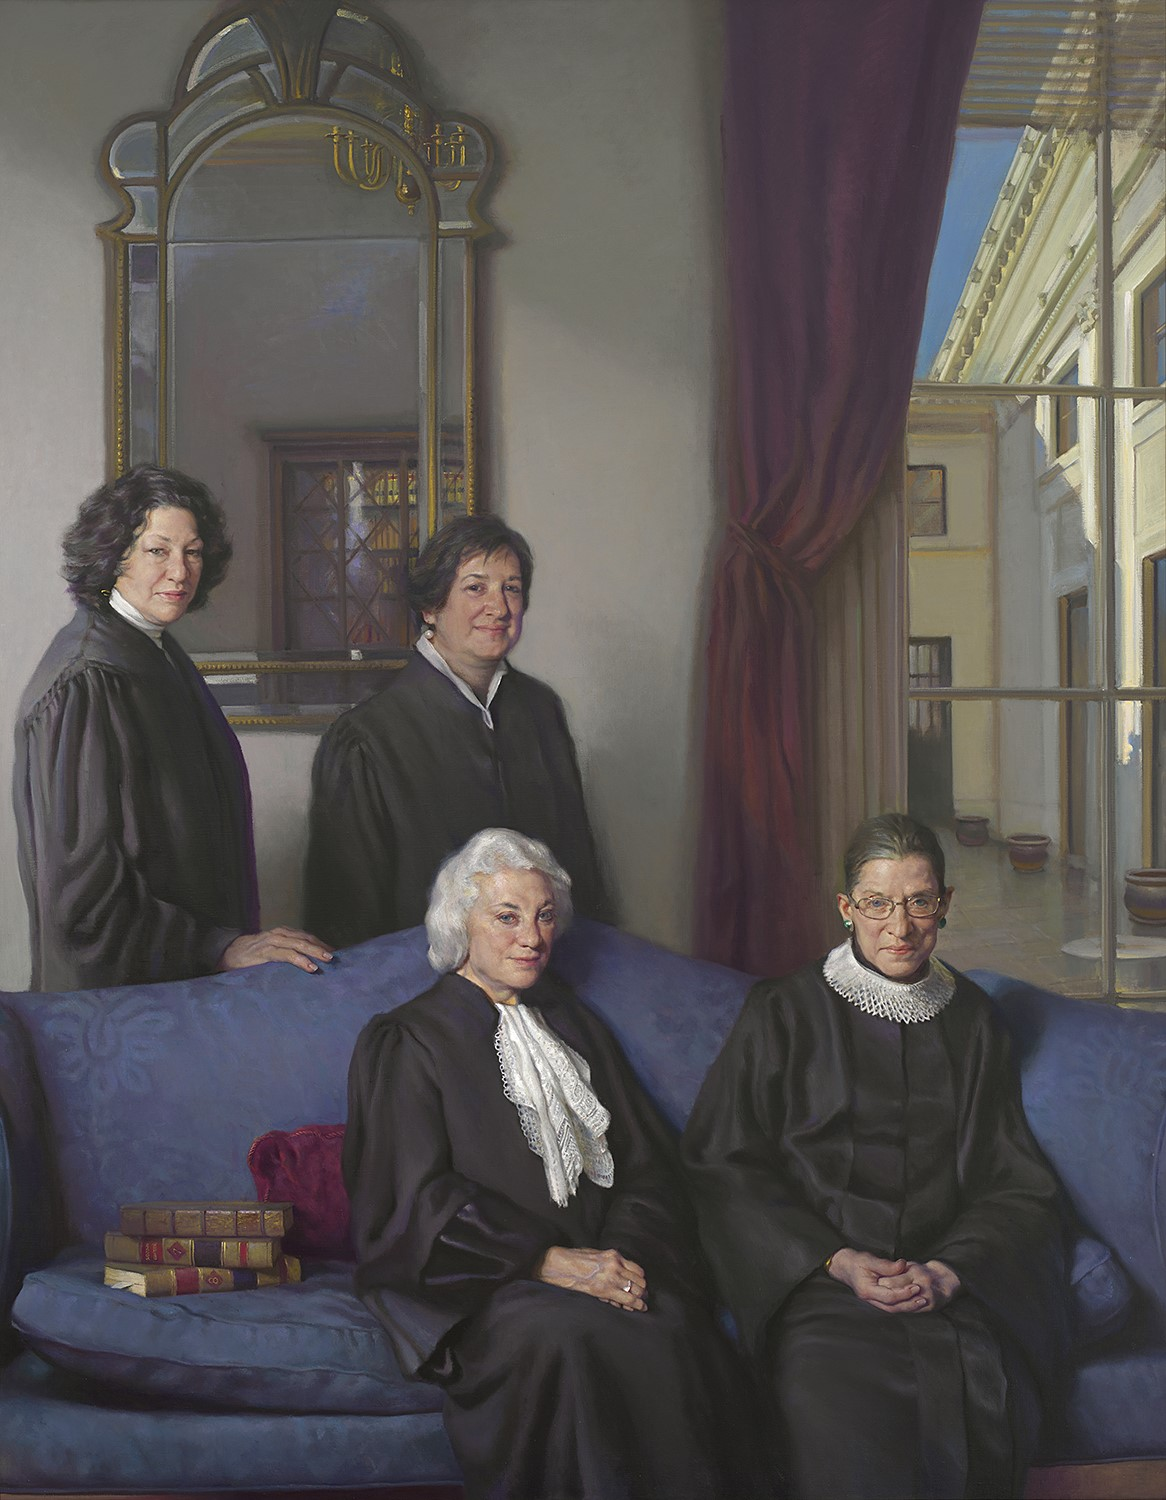 Four women Justices standing in a group